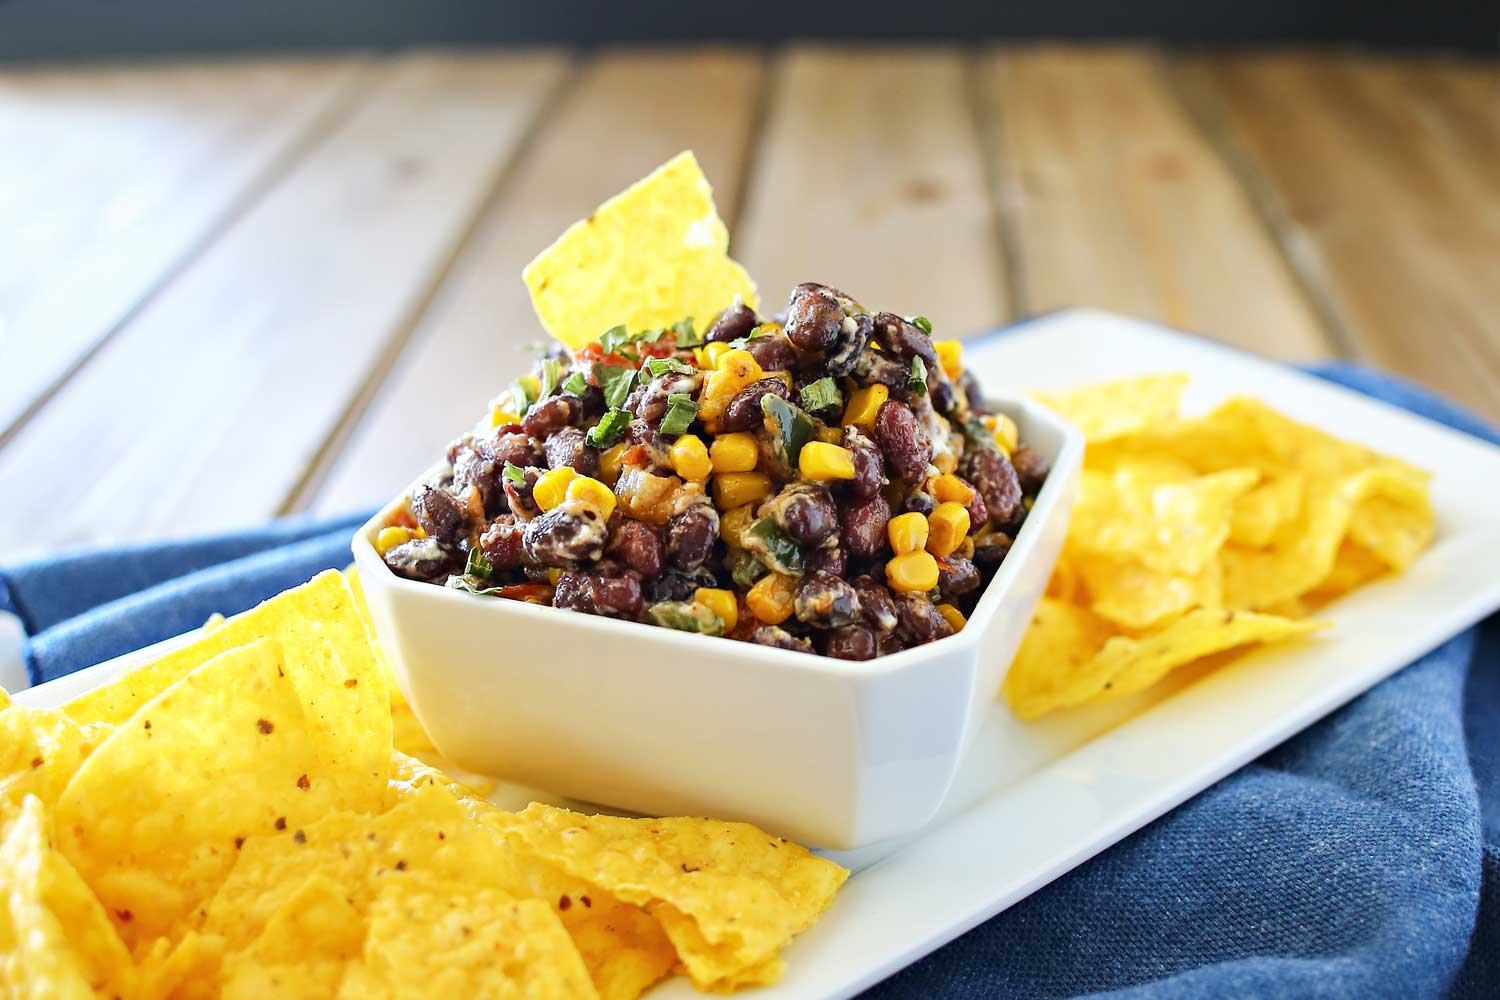 Transfer corn and black bean salsa to serving bowl, garnish with chives and serve with tortilla chips.